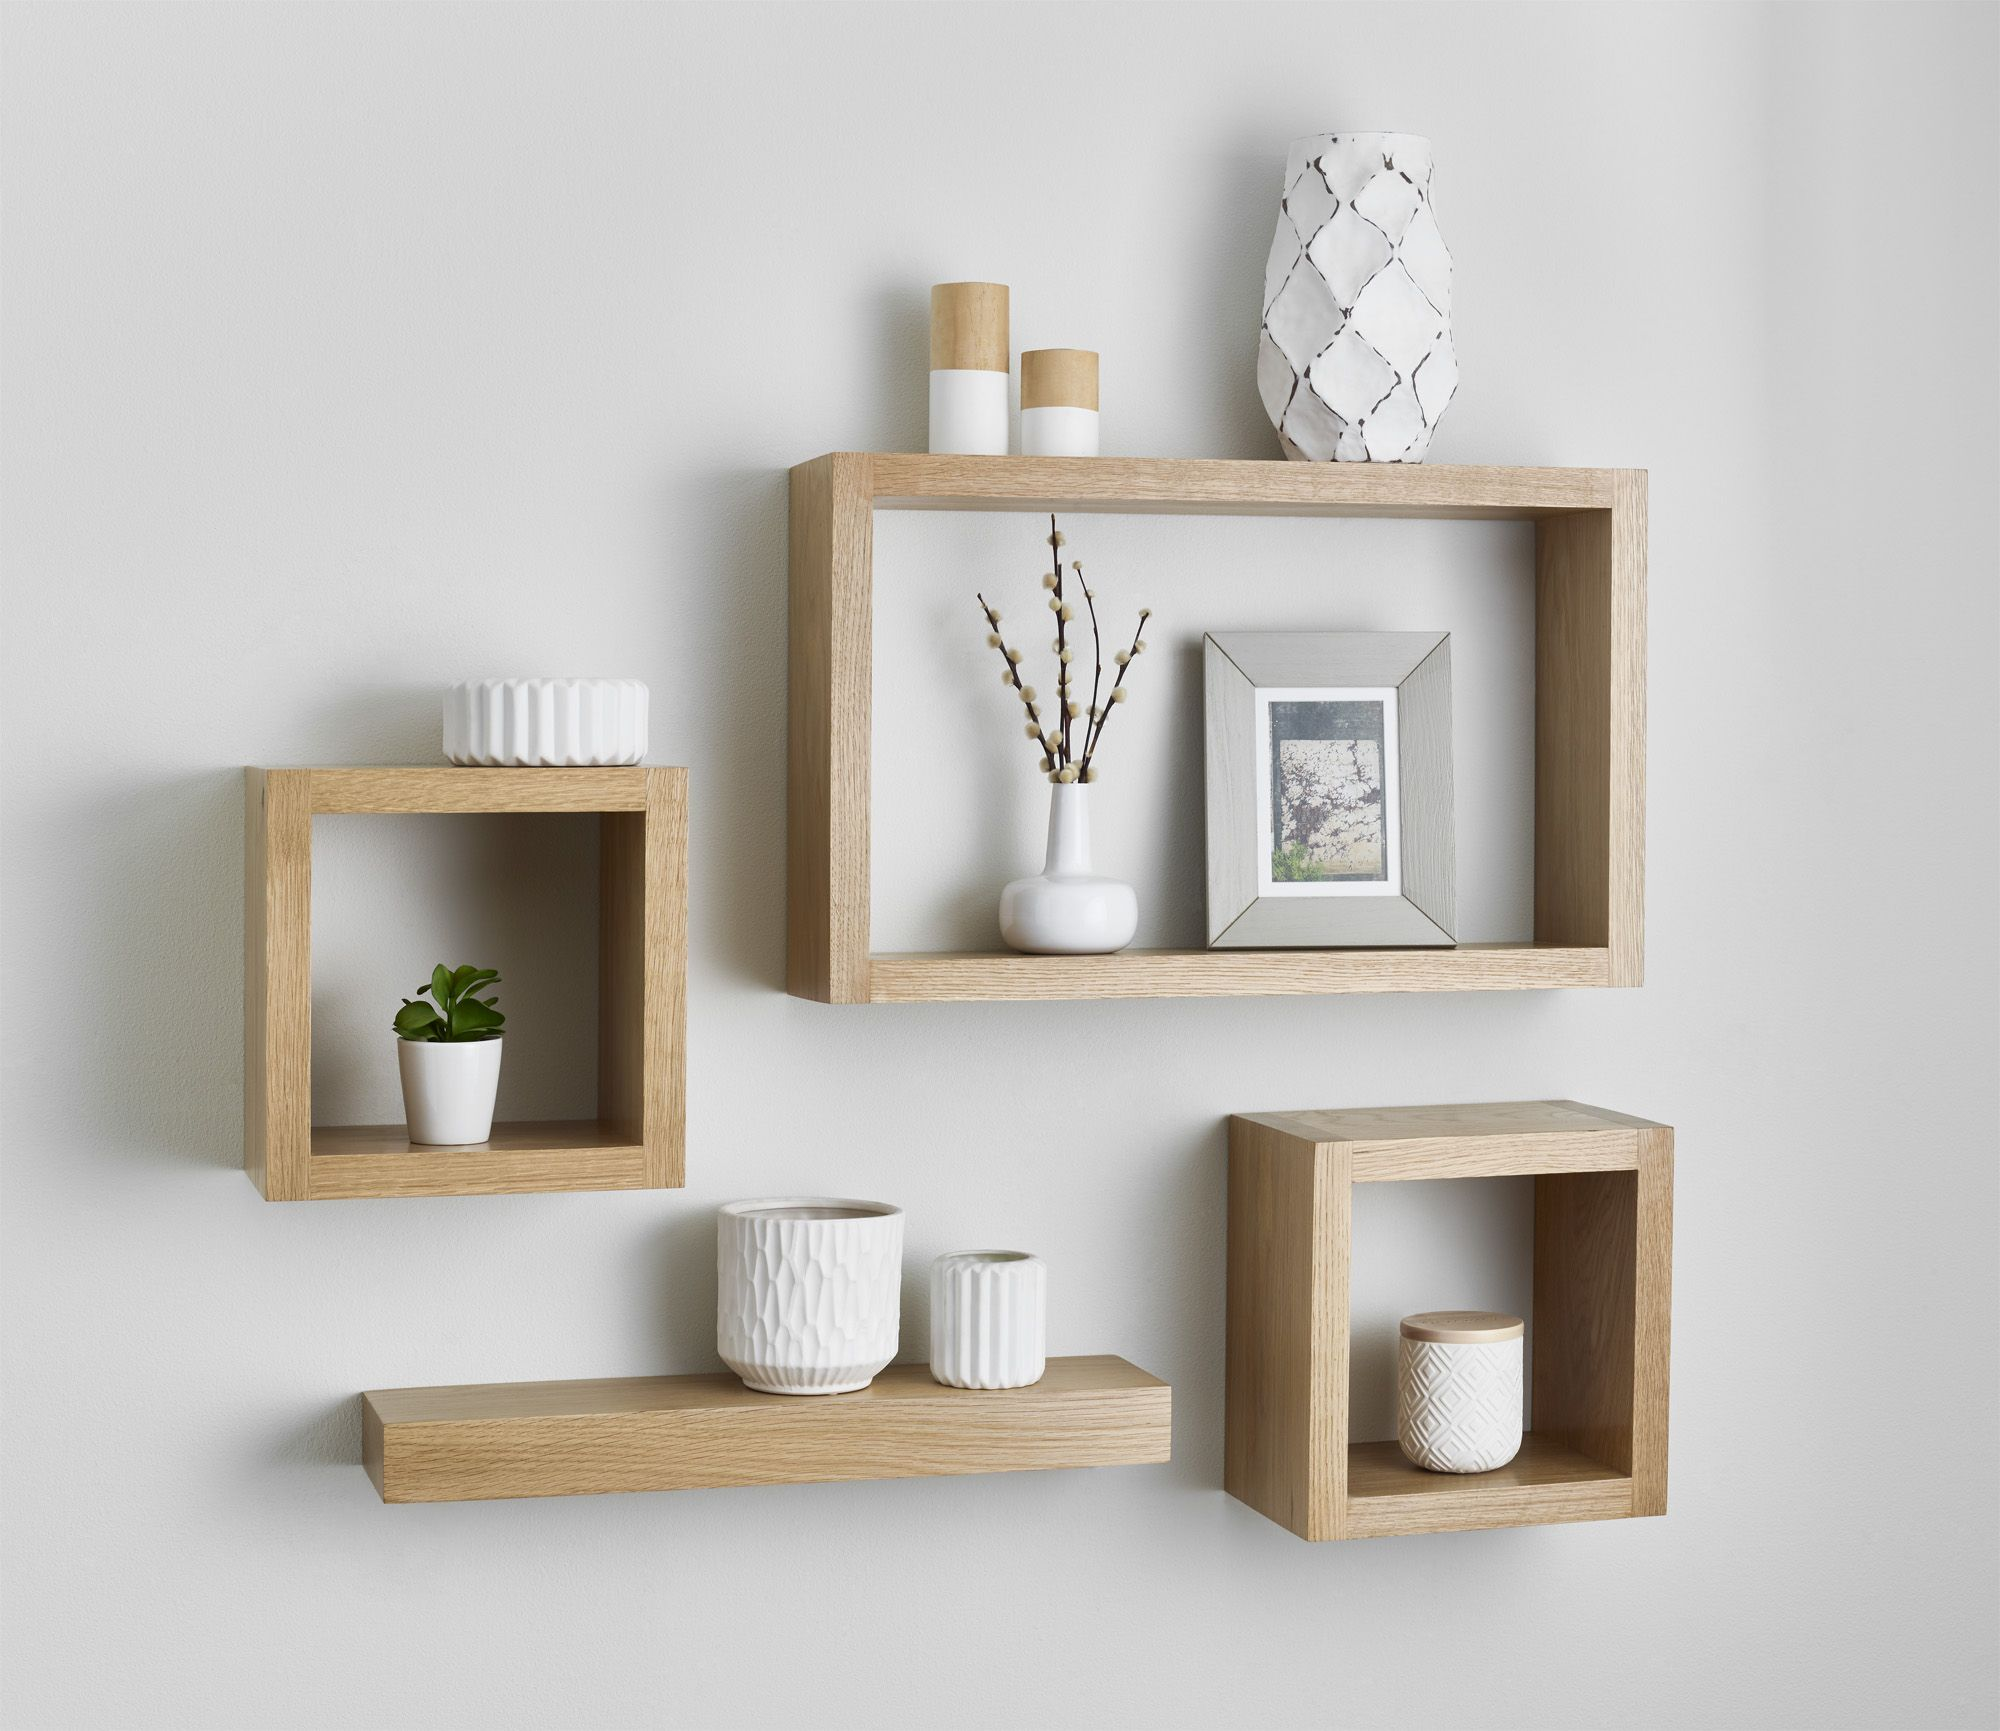 solid oak floating cube shelf custom made measure shelves barn wood beam industrial shelving kitchen metal brackets for glass narrow unit white designs hall quirky wall above